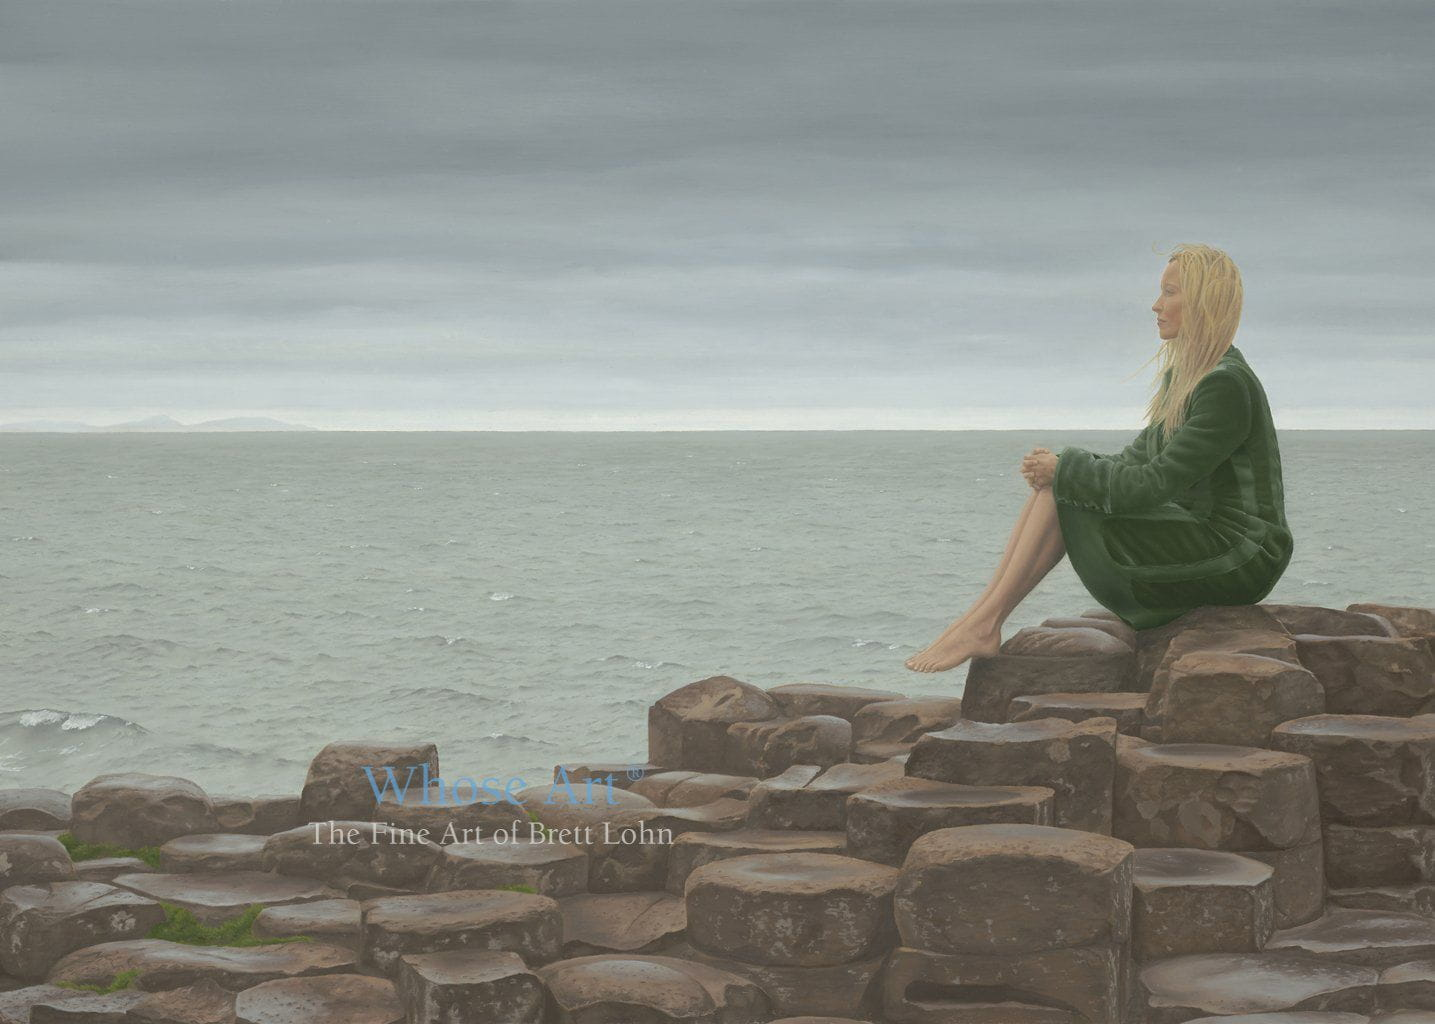 Fine art card size A5 of a painting depicting a young lady dressed in a green velvet coat, sitting on Giant's Causeway